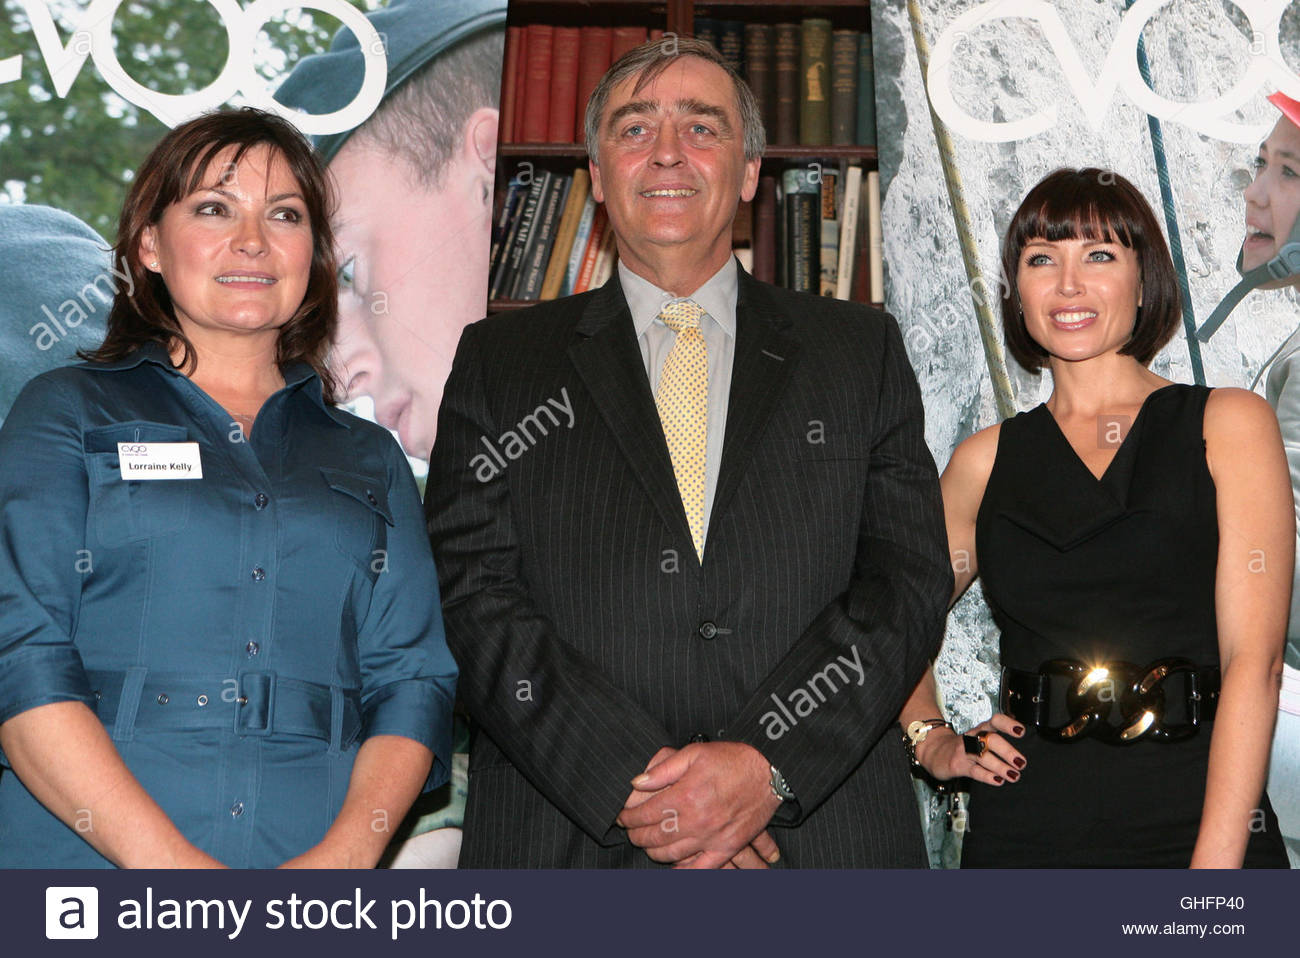 File photo dated 6/10/2009 of Dannii Minogue (right), with presenter Lorraine Kelly (left) and the Duke of Westminster, - Stock Image